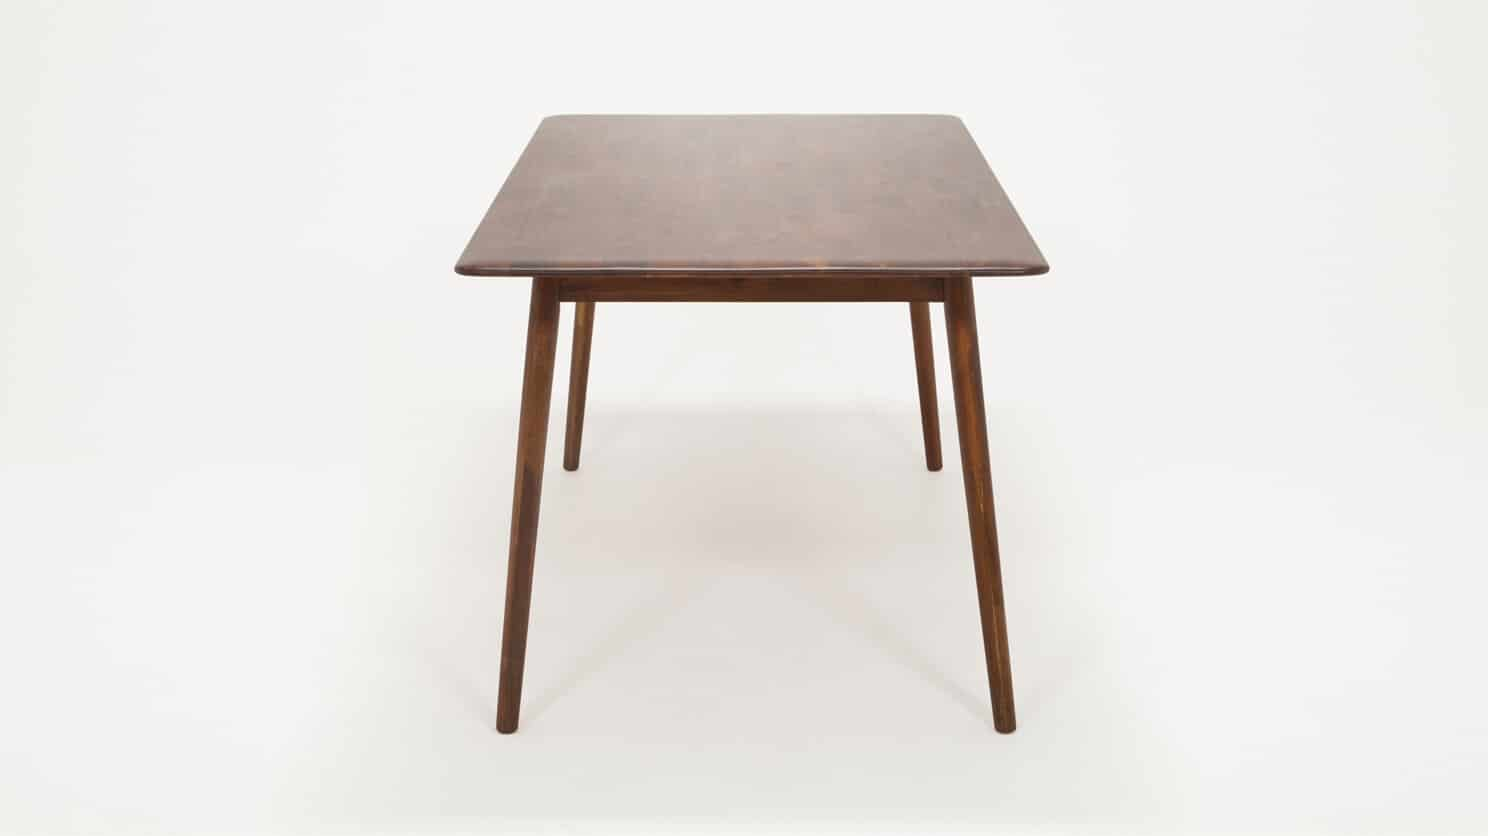 7110 301 49 3 dining tables kacia 84 dining table side 01